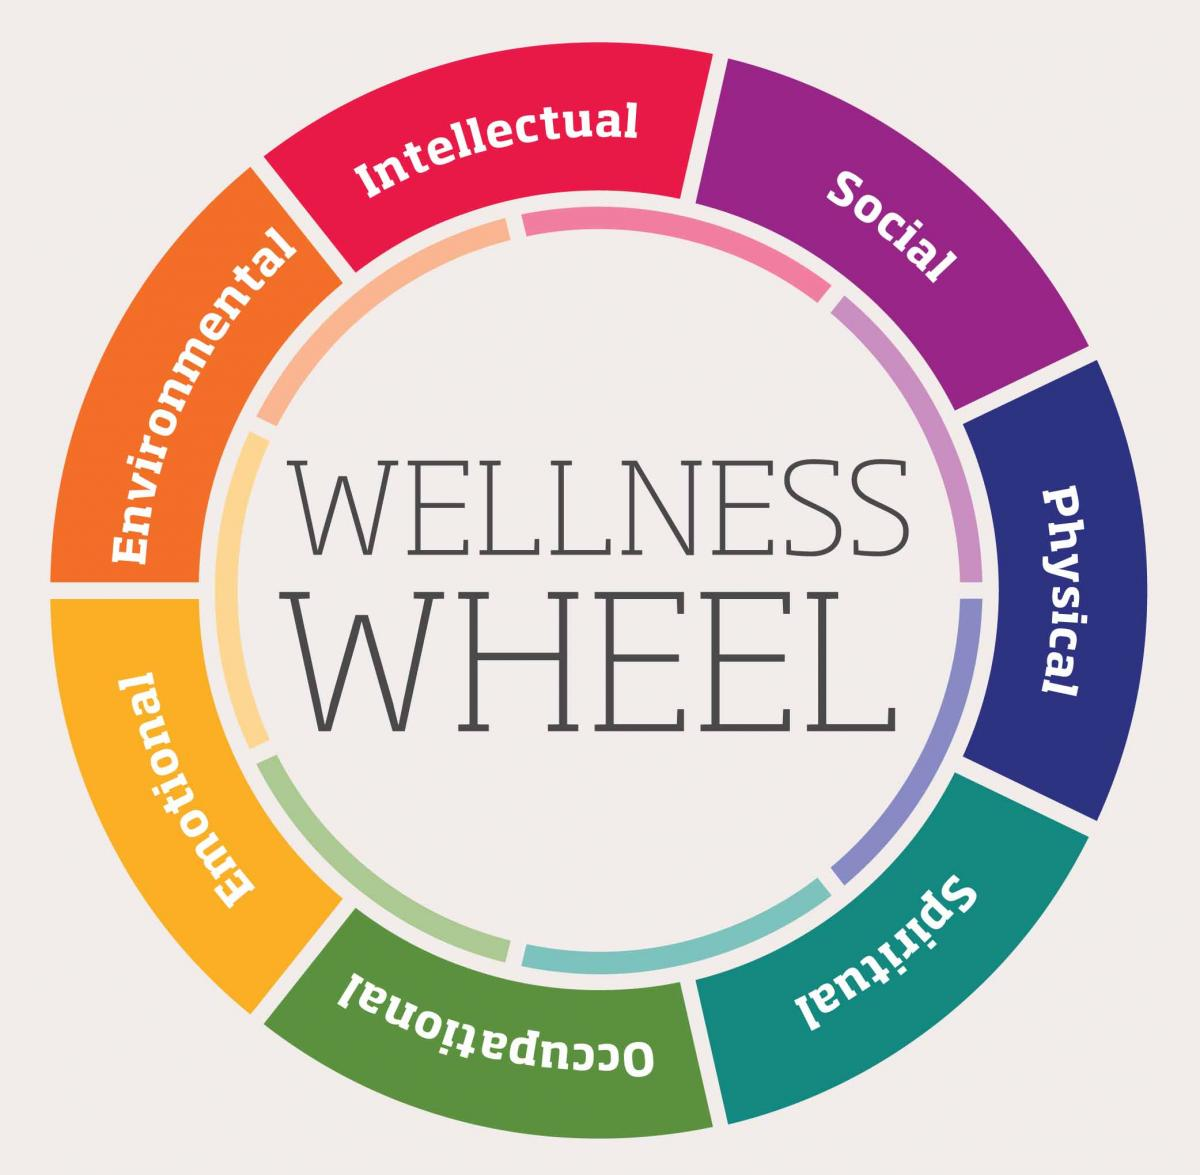 Worksheets Wellness Wheel Worksheet building your own wellness wheel jamie meets world